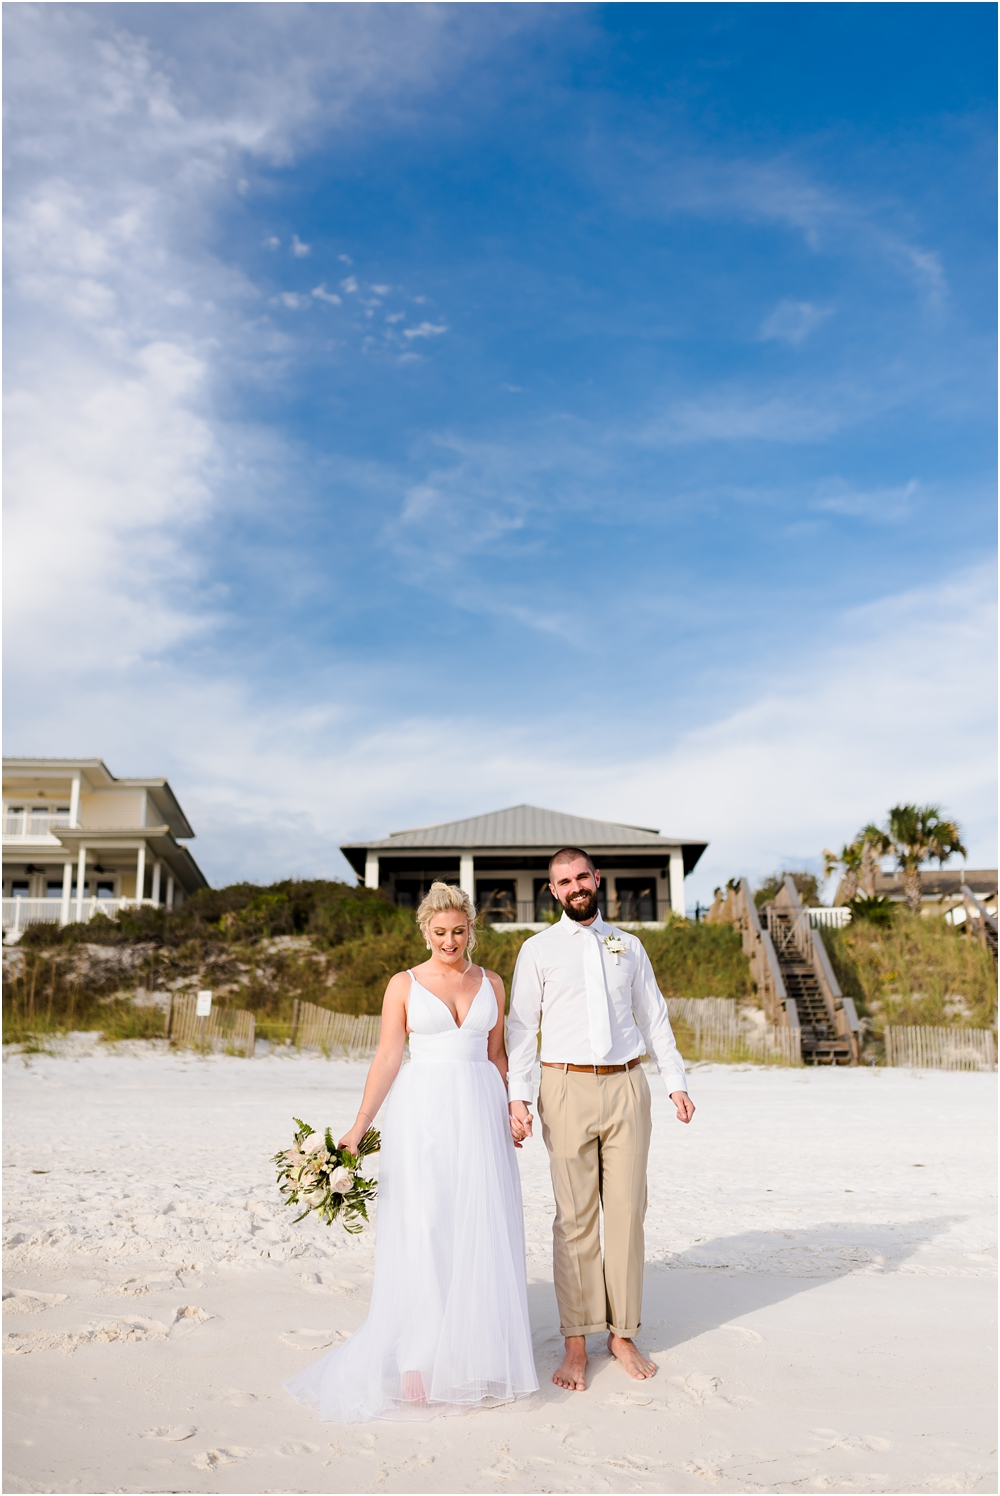 wernert-florida-beach-elopement-wedding-photographer-kiersten-grant-66.jpg